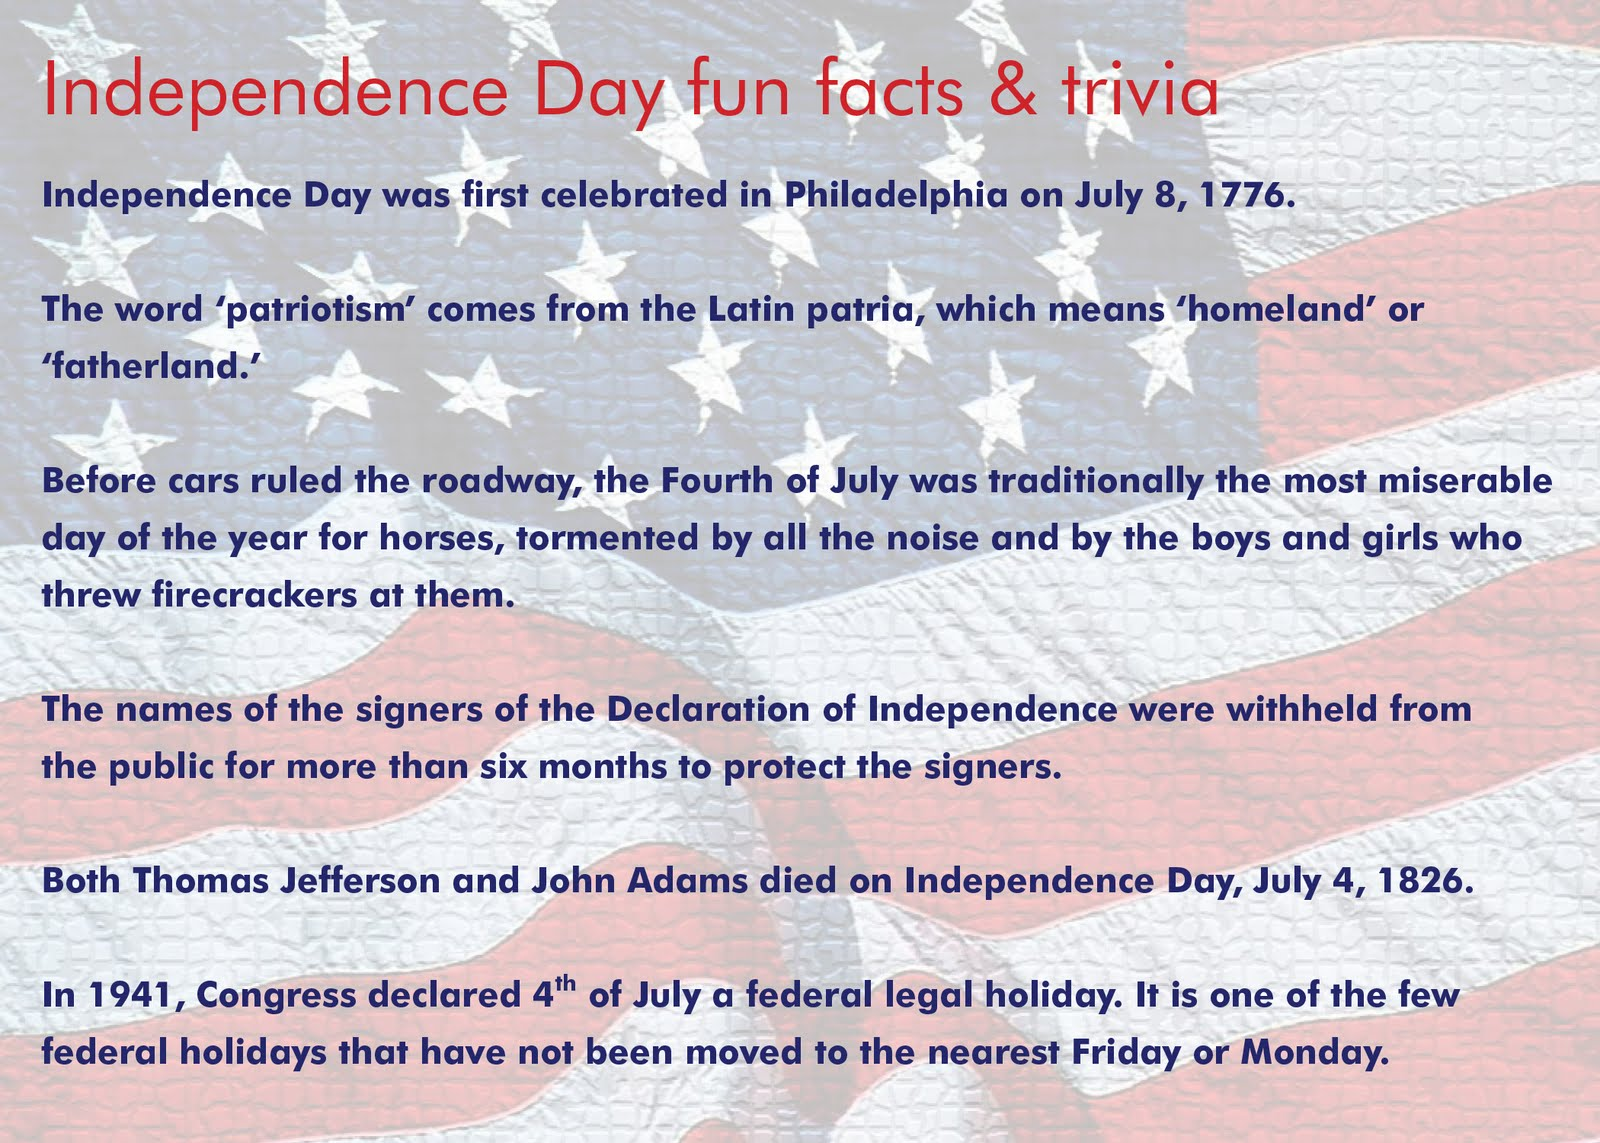 Roberto S Random Thoughts Independence Day Fun Facts